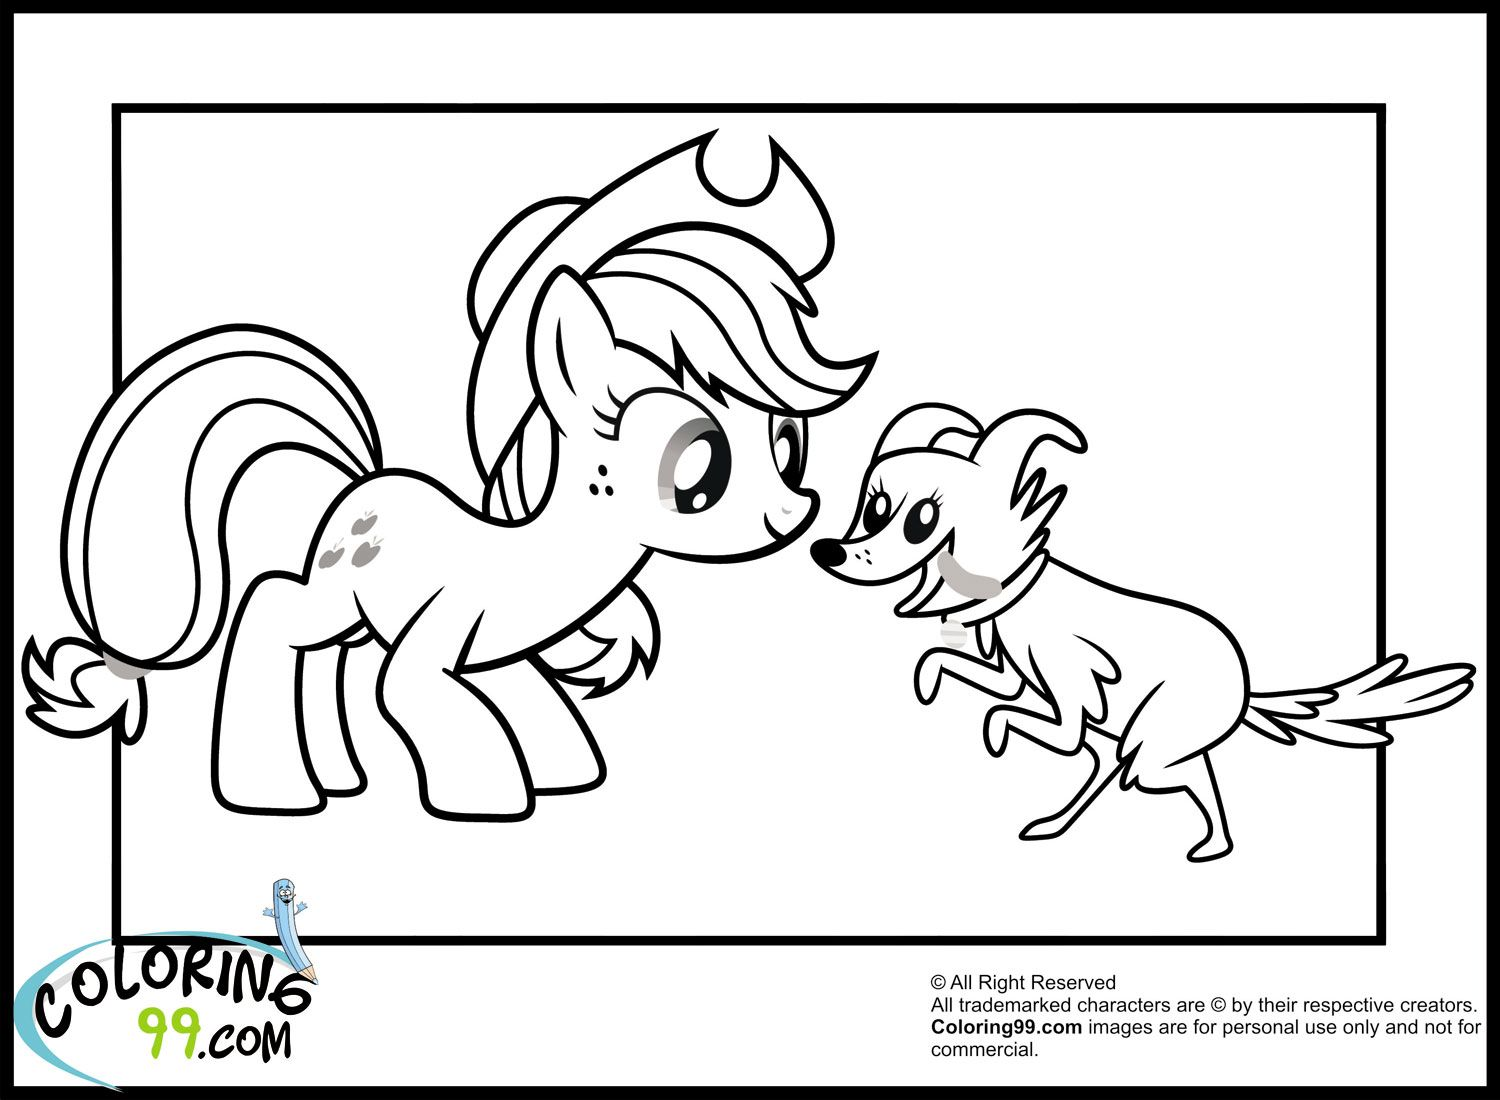 Applejack Coloring Page | Coloring Pages | Pinterest